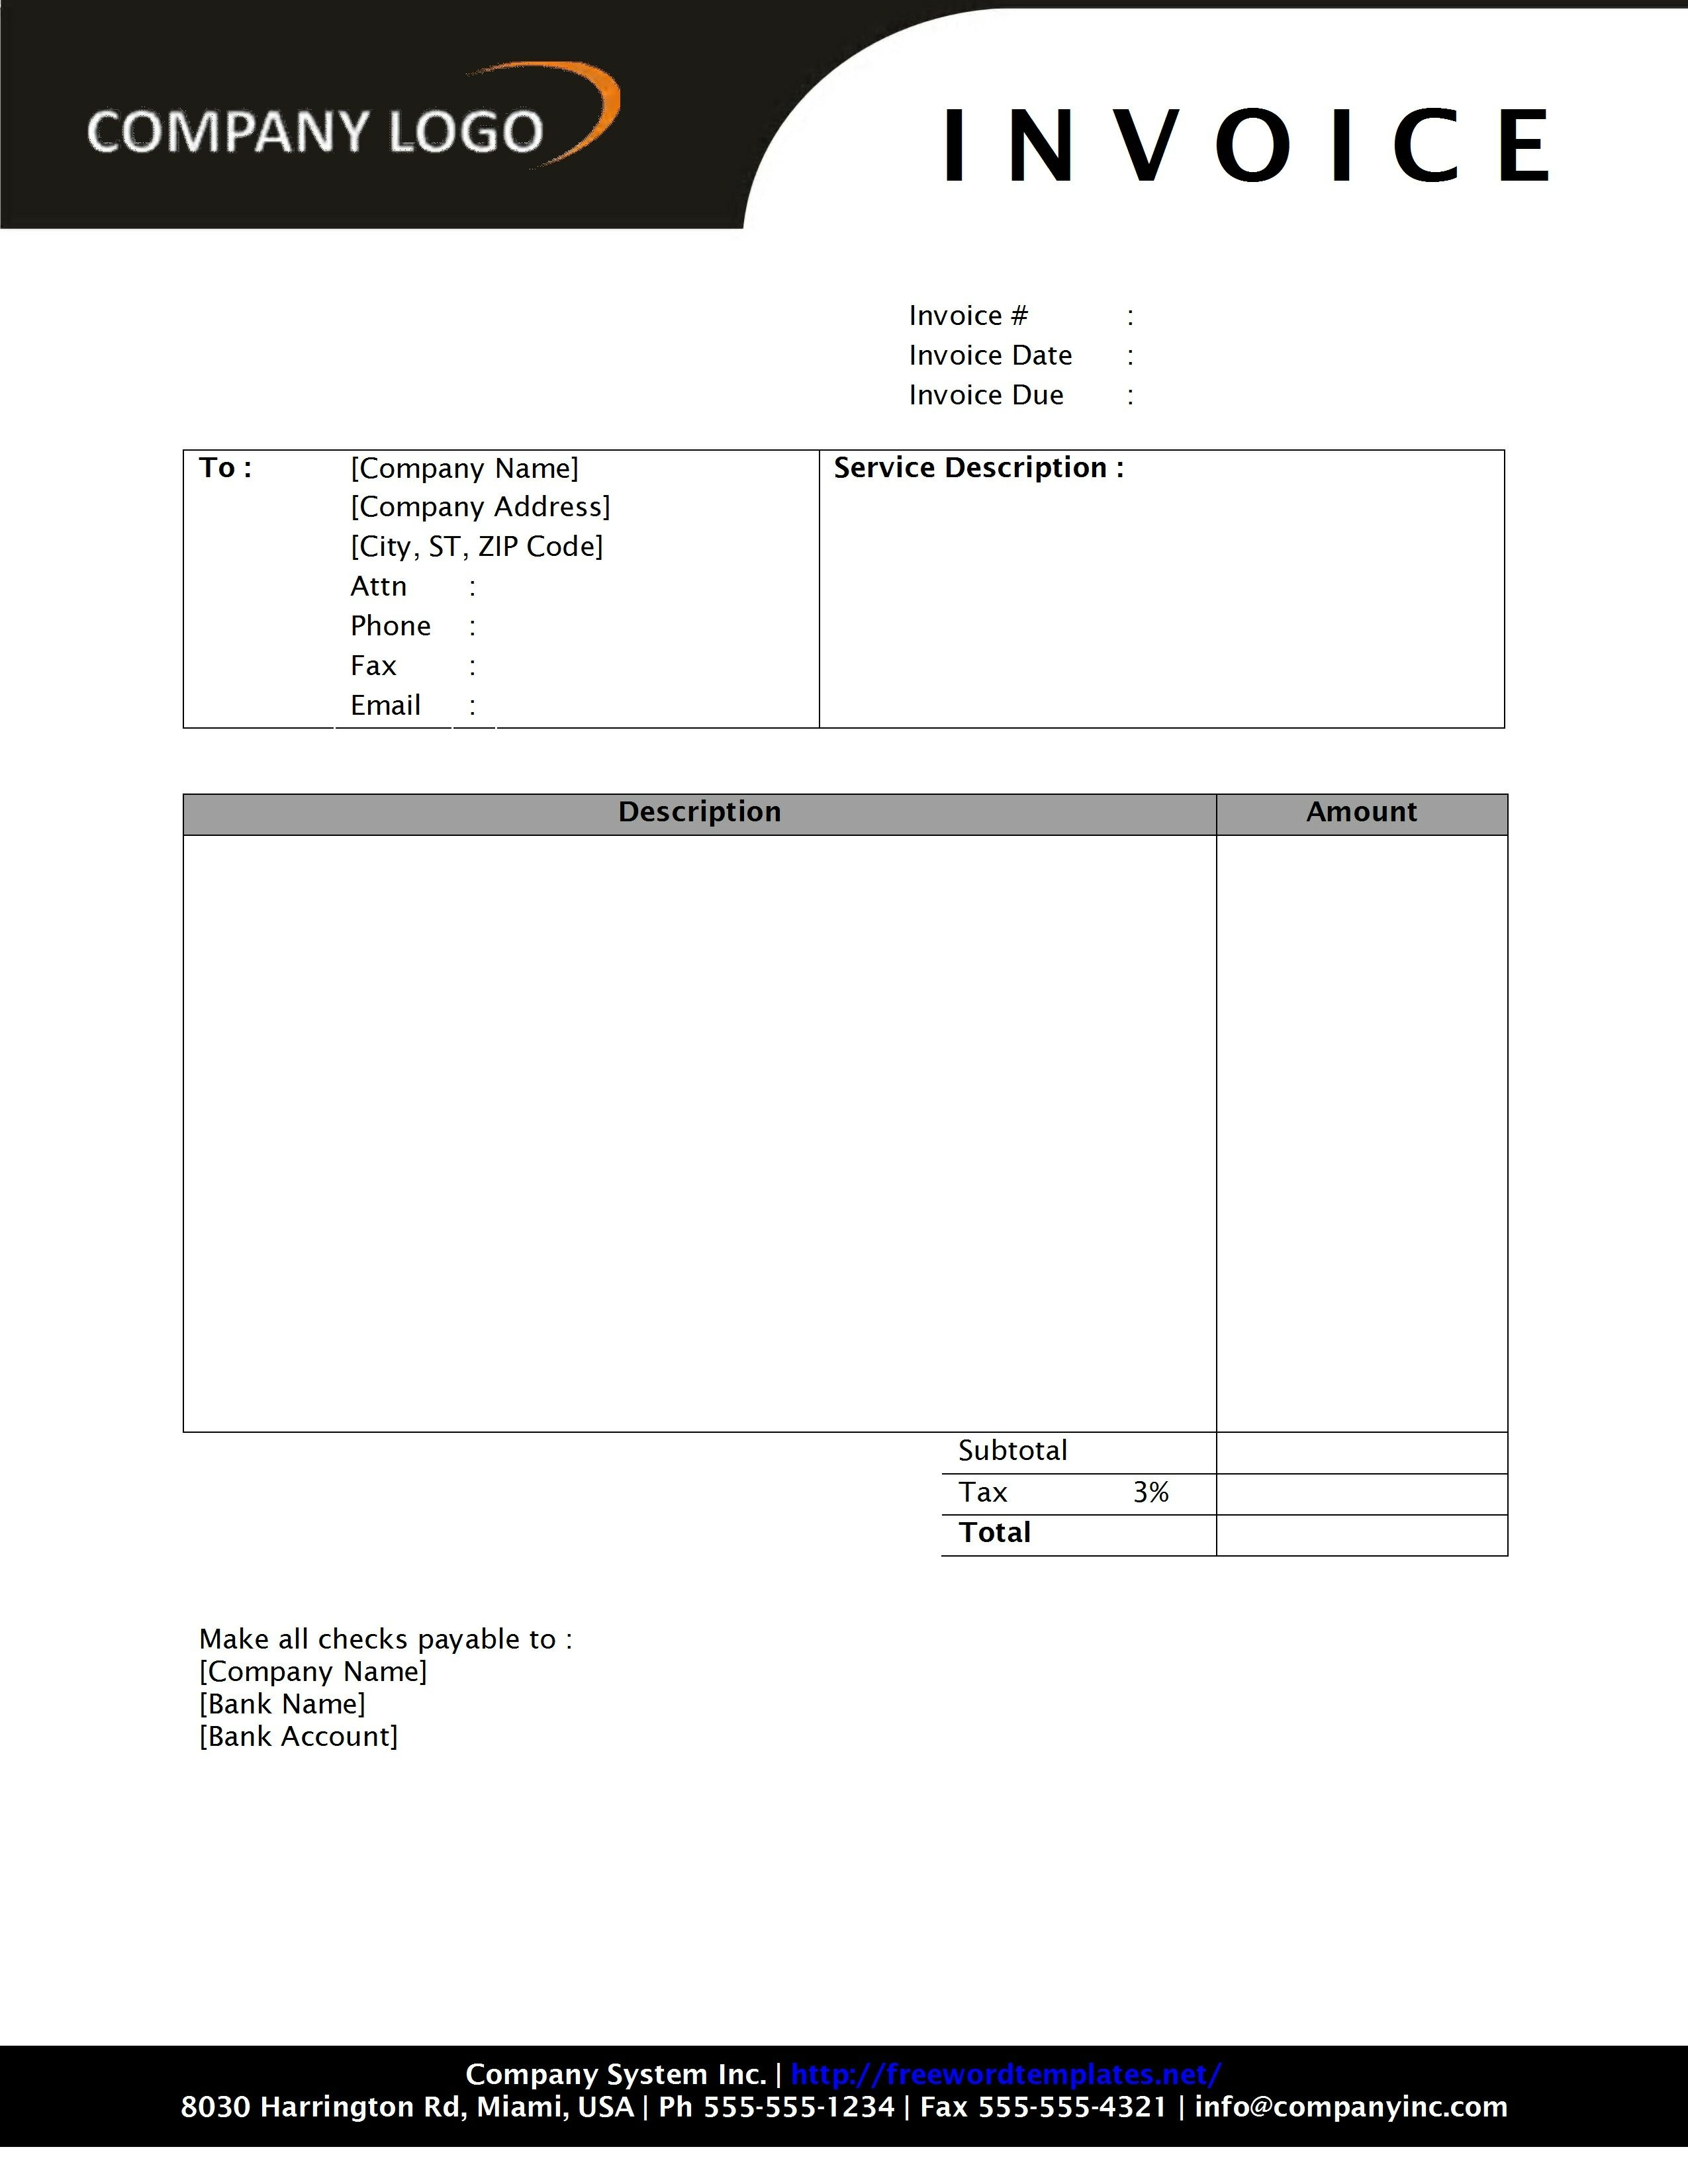 microsoft free invoice template 19 best photos of free estimate invoice template microsoft word 2550 X 3300